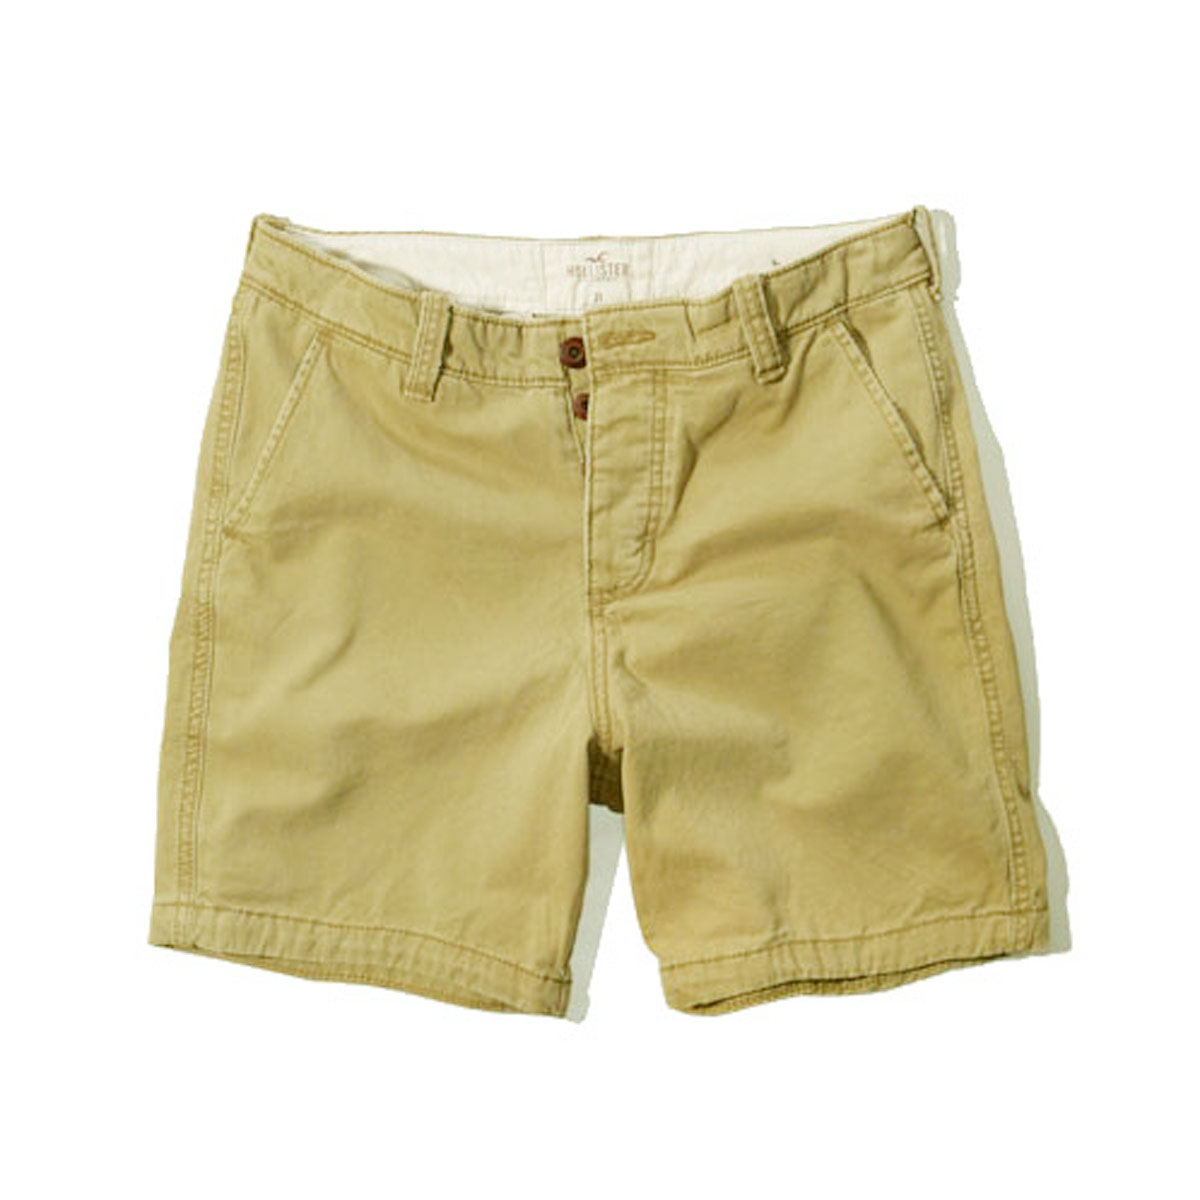 ホリスター HOLLISTER 正規品 メンズ ショートパンツ Hollister Beach Prep Fit Shorts Inseam 7 Inches 328-281-0487-044